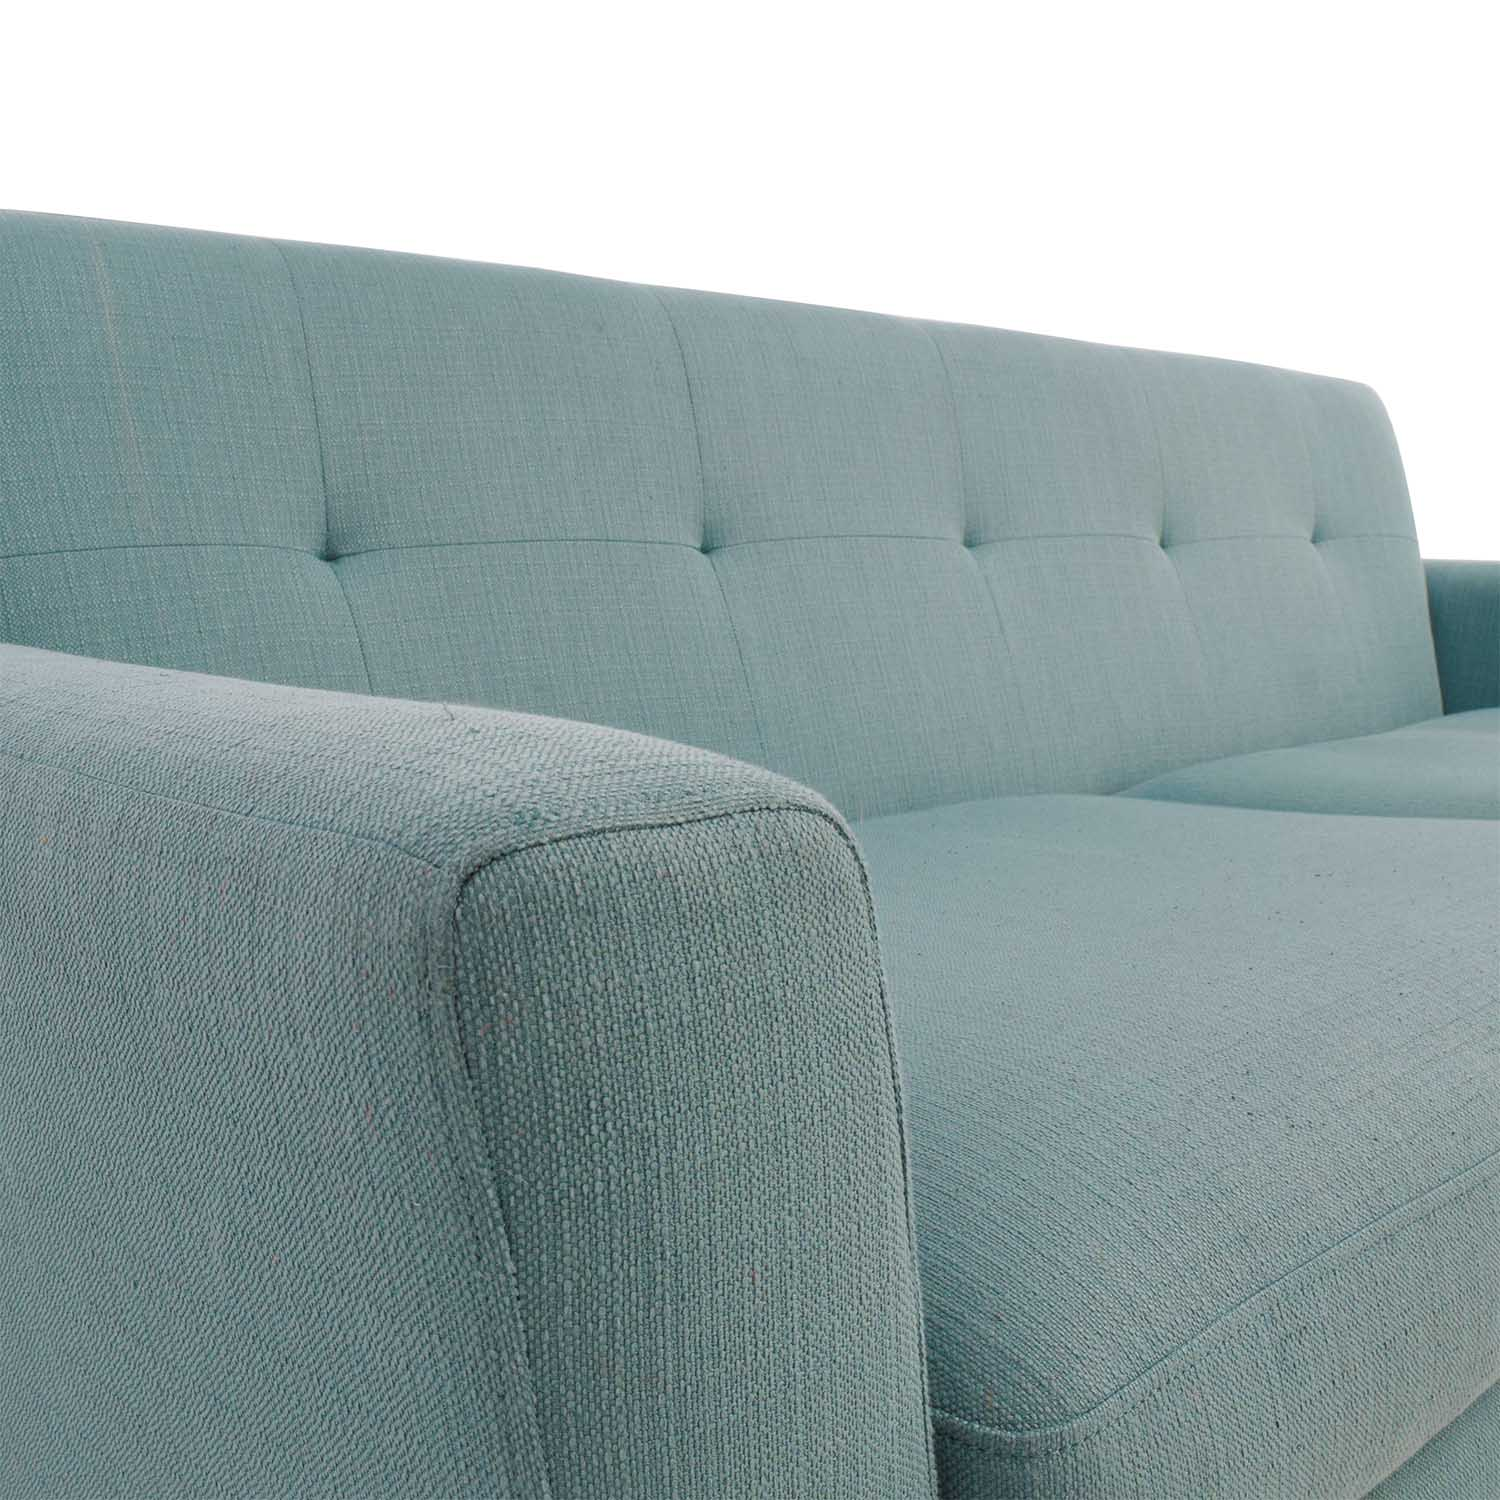 59 Off Midcentury Modern Tufted Light Teal Loveseat